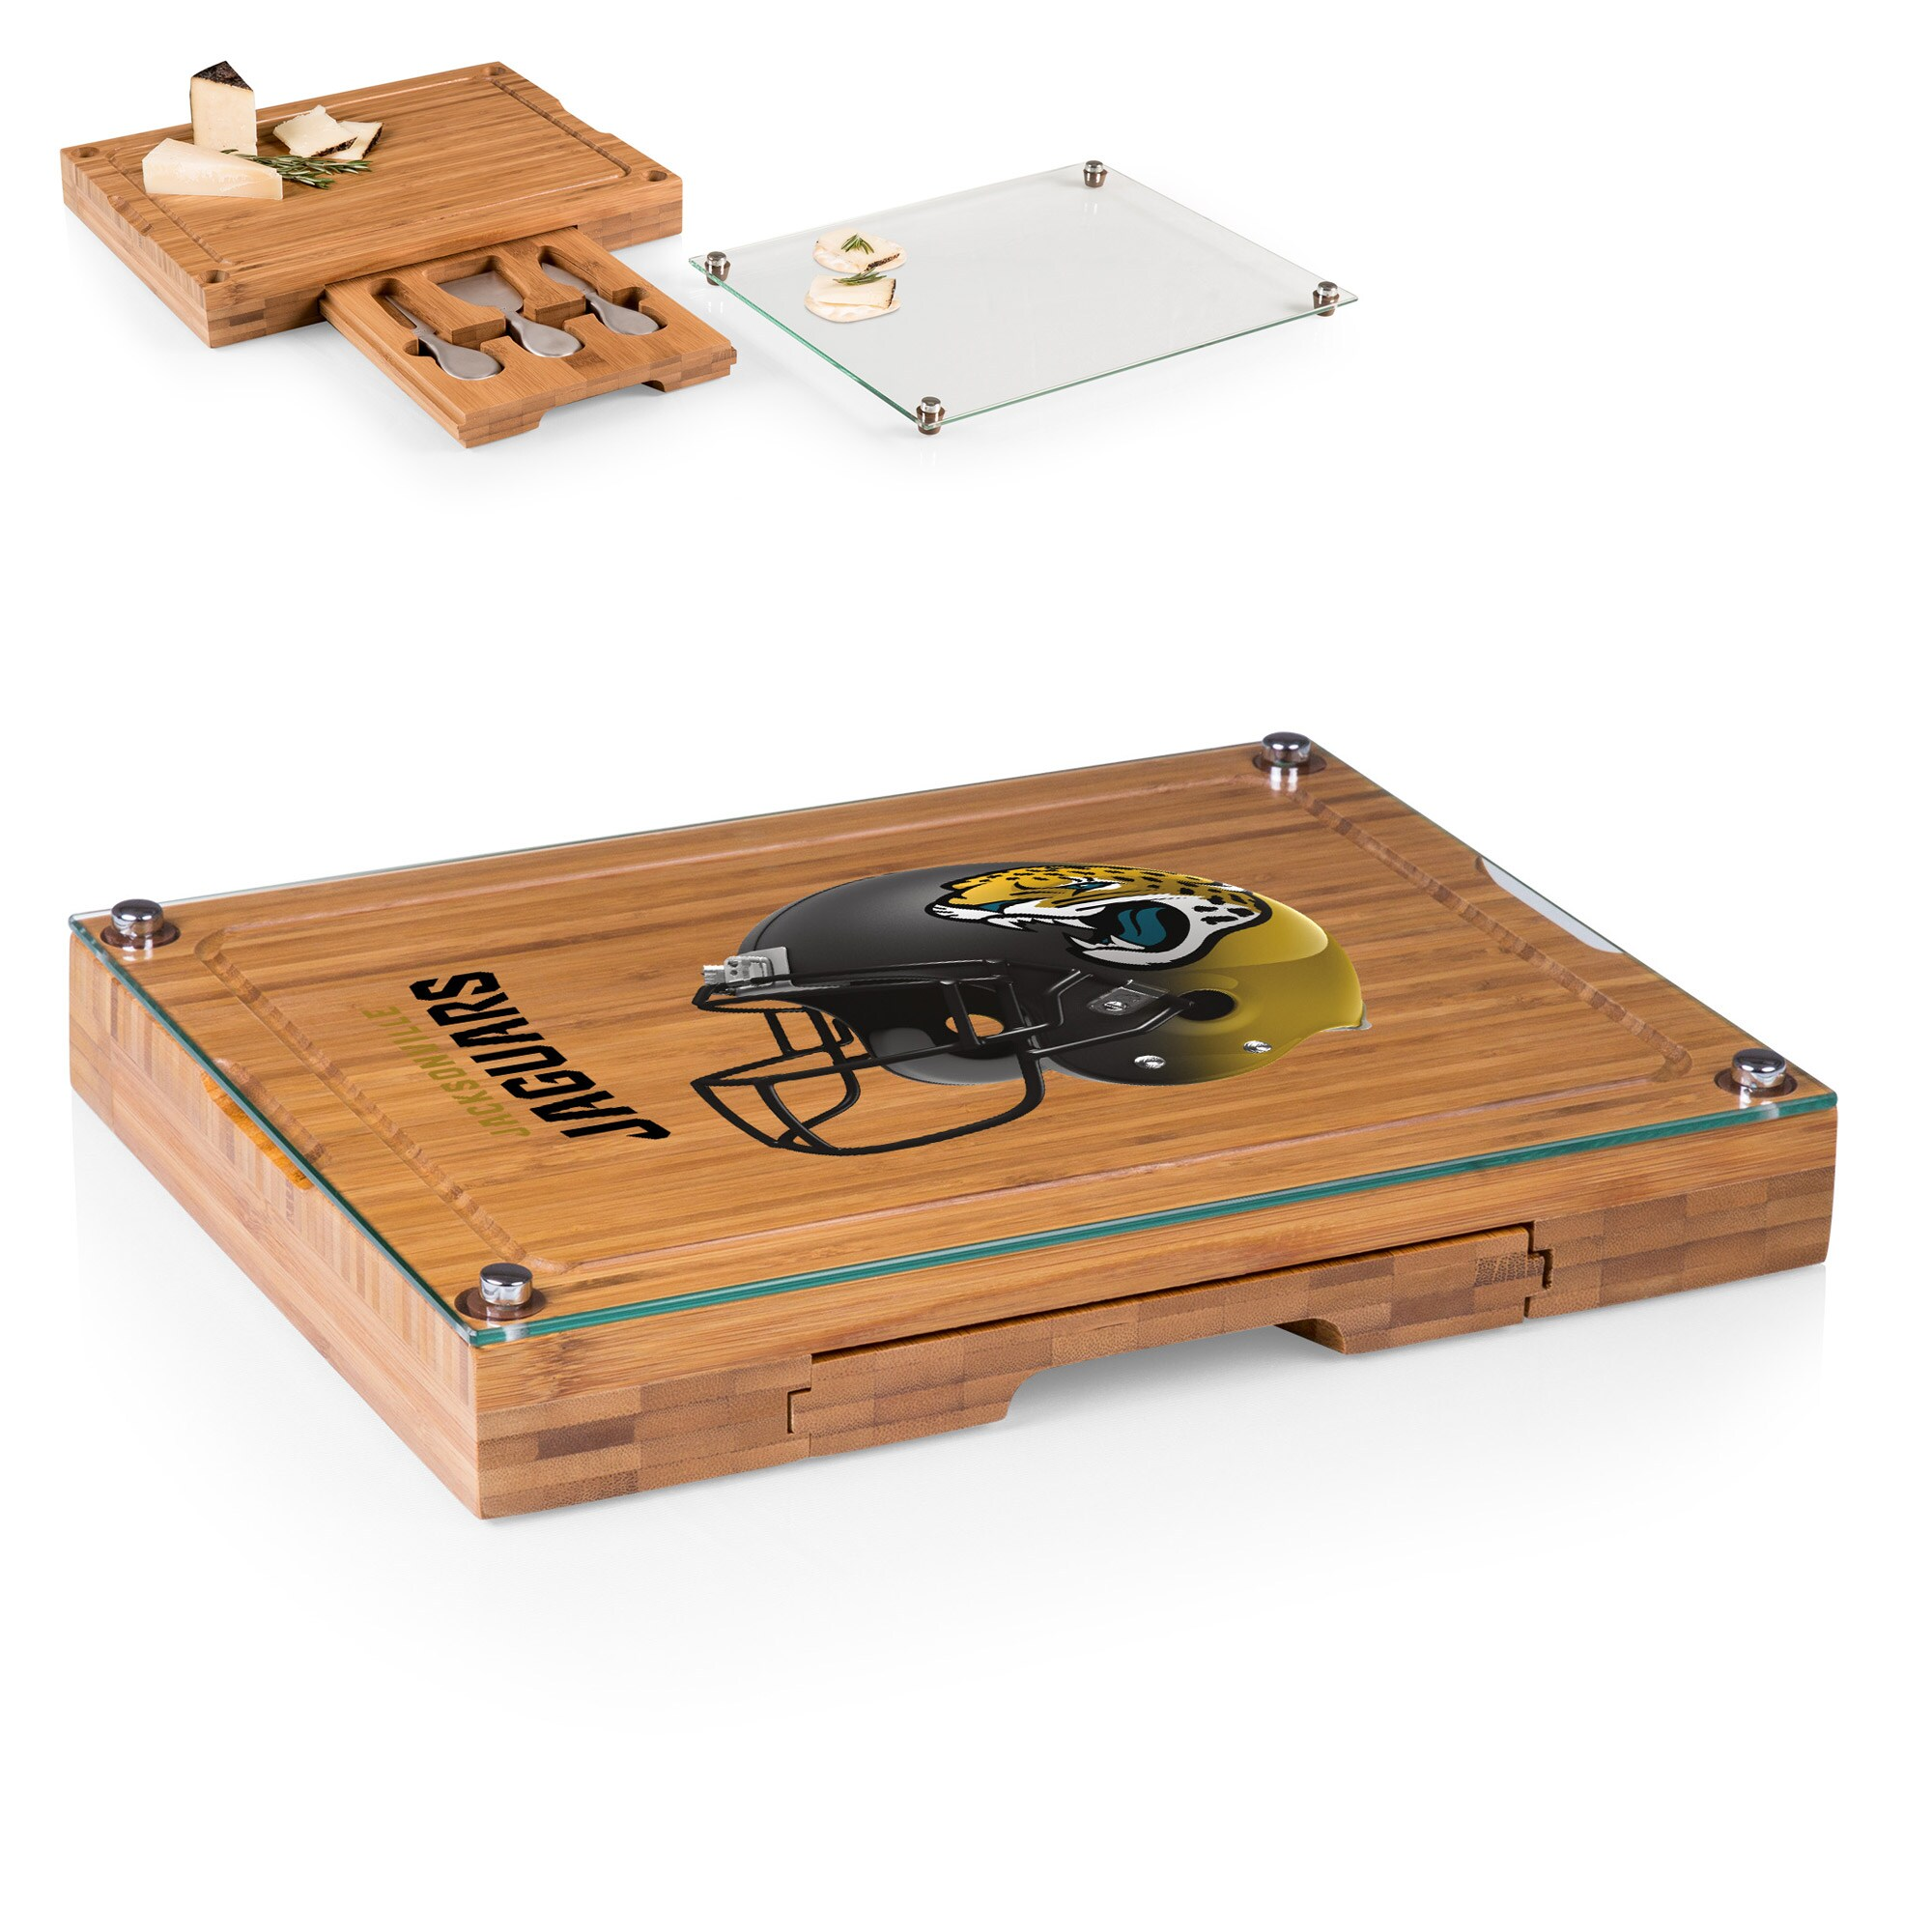 Jacksonville Jaguars Concerto Cheese Board with Serving Stage and Tools